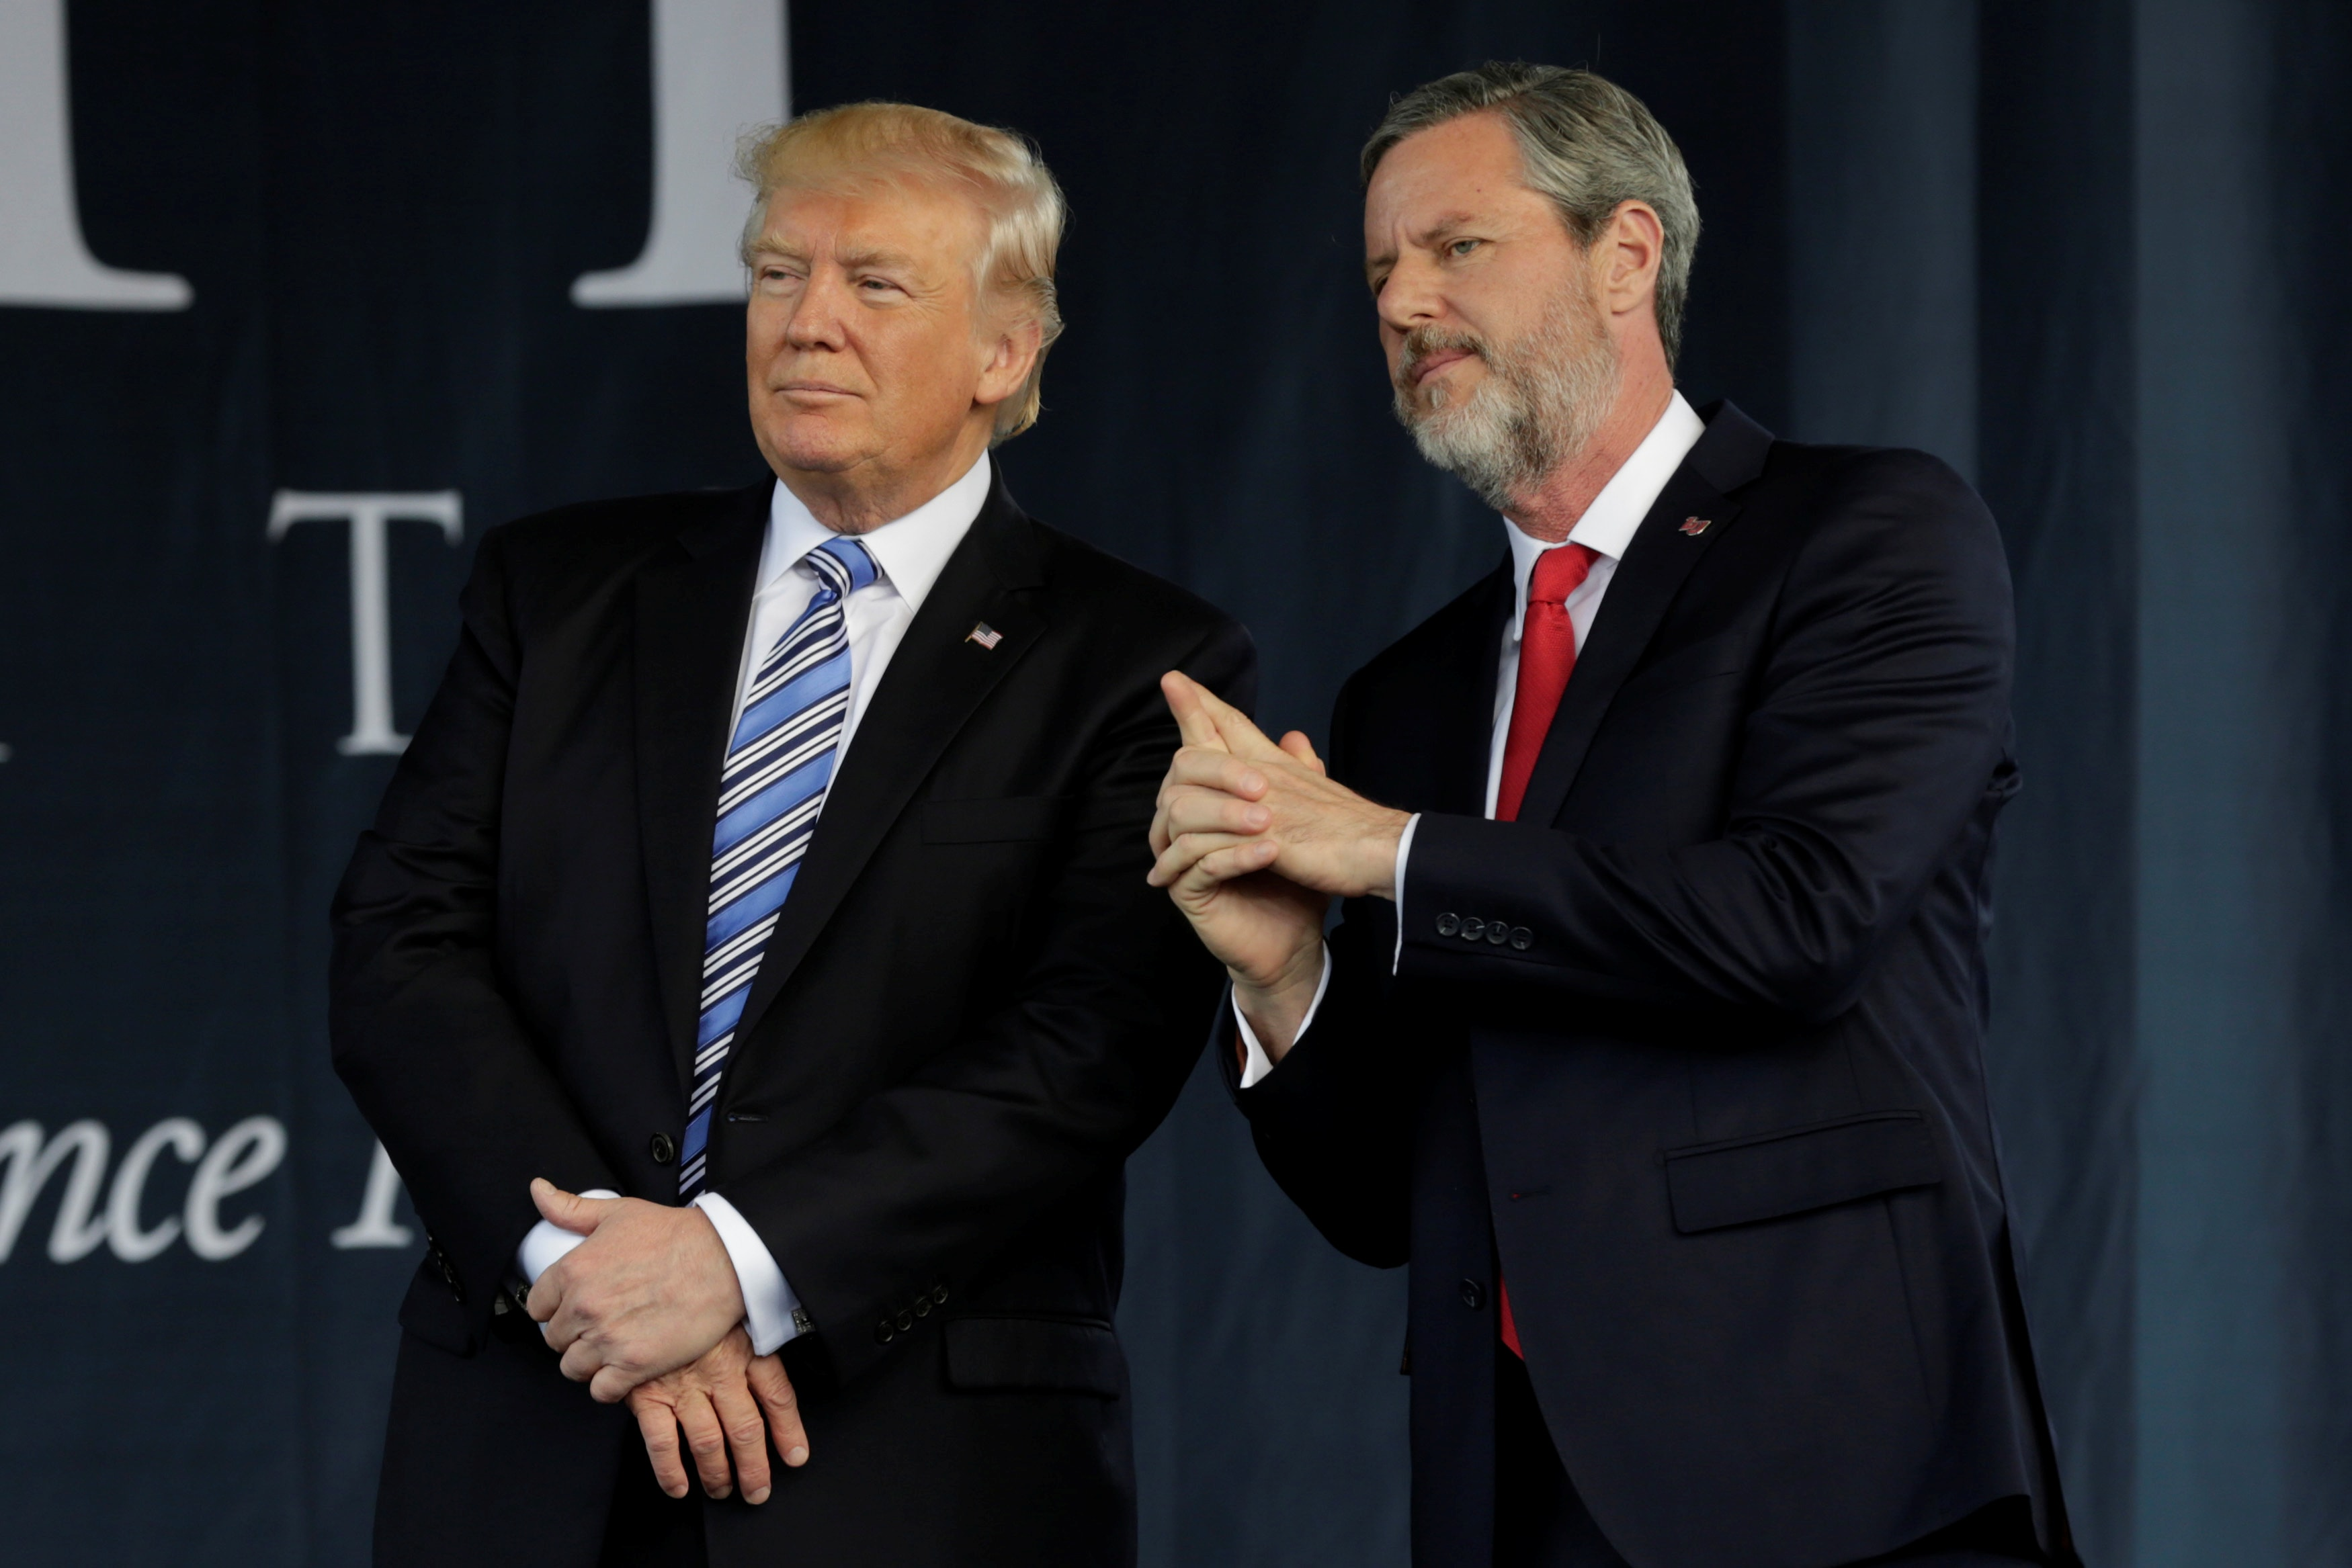 Donald Trump and Jerry Falwell Jr.